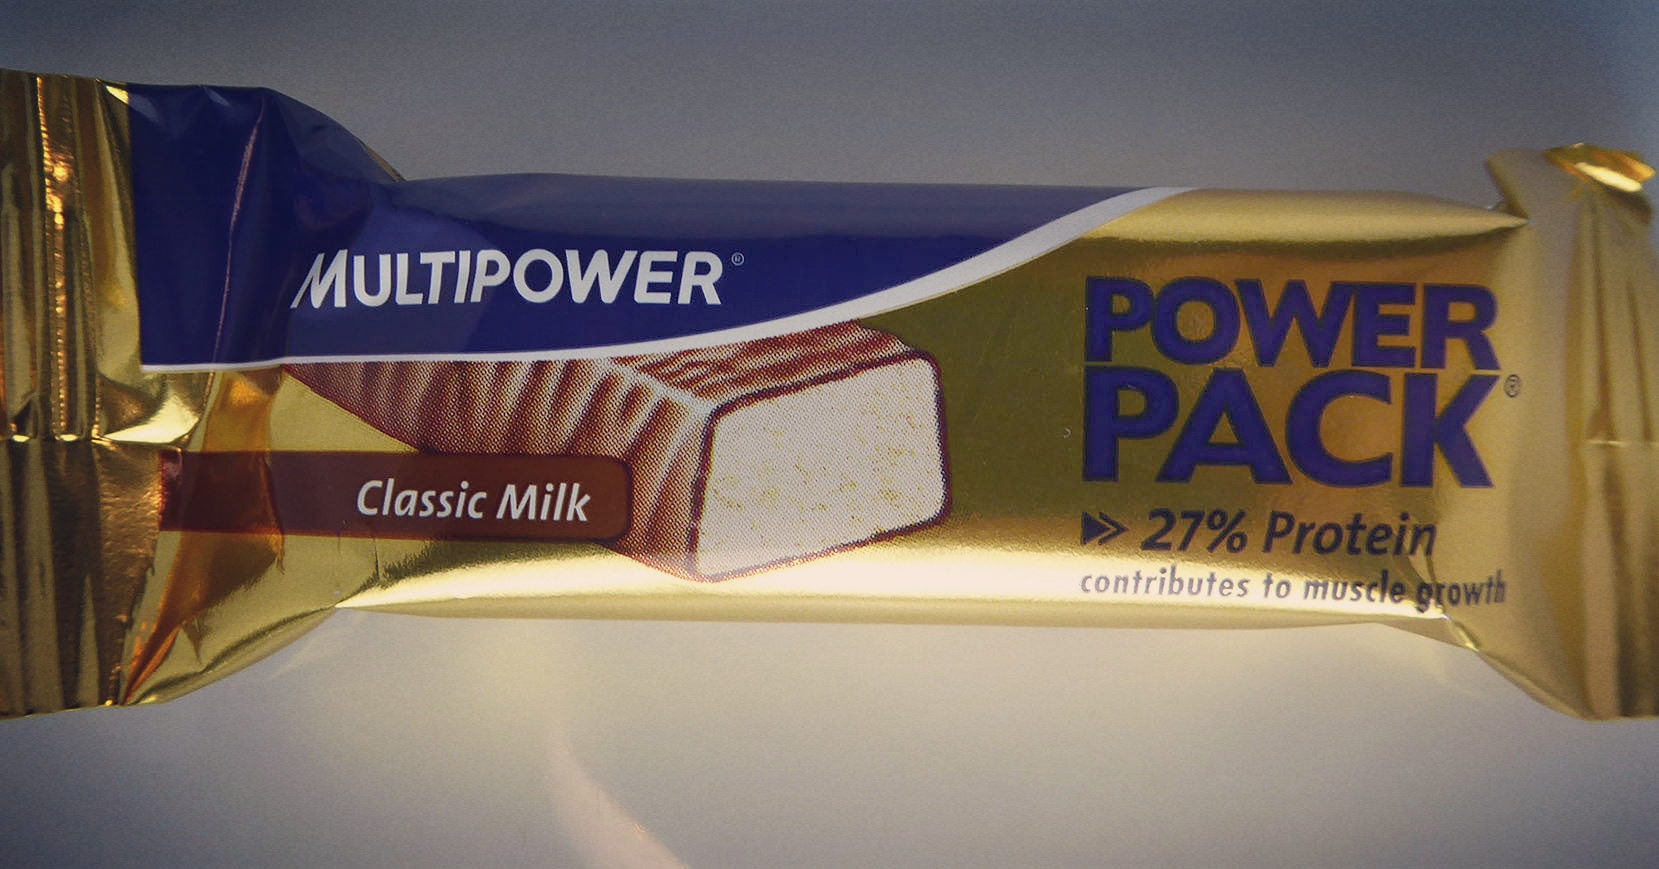 Multipower CLassic Milk Power Pack